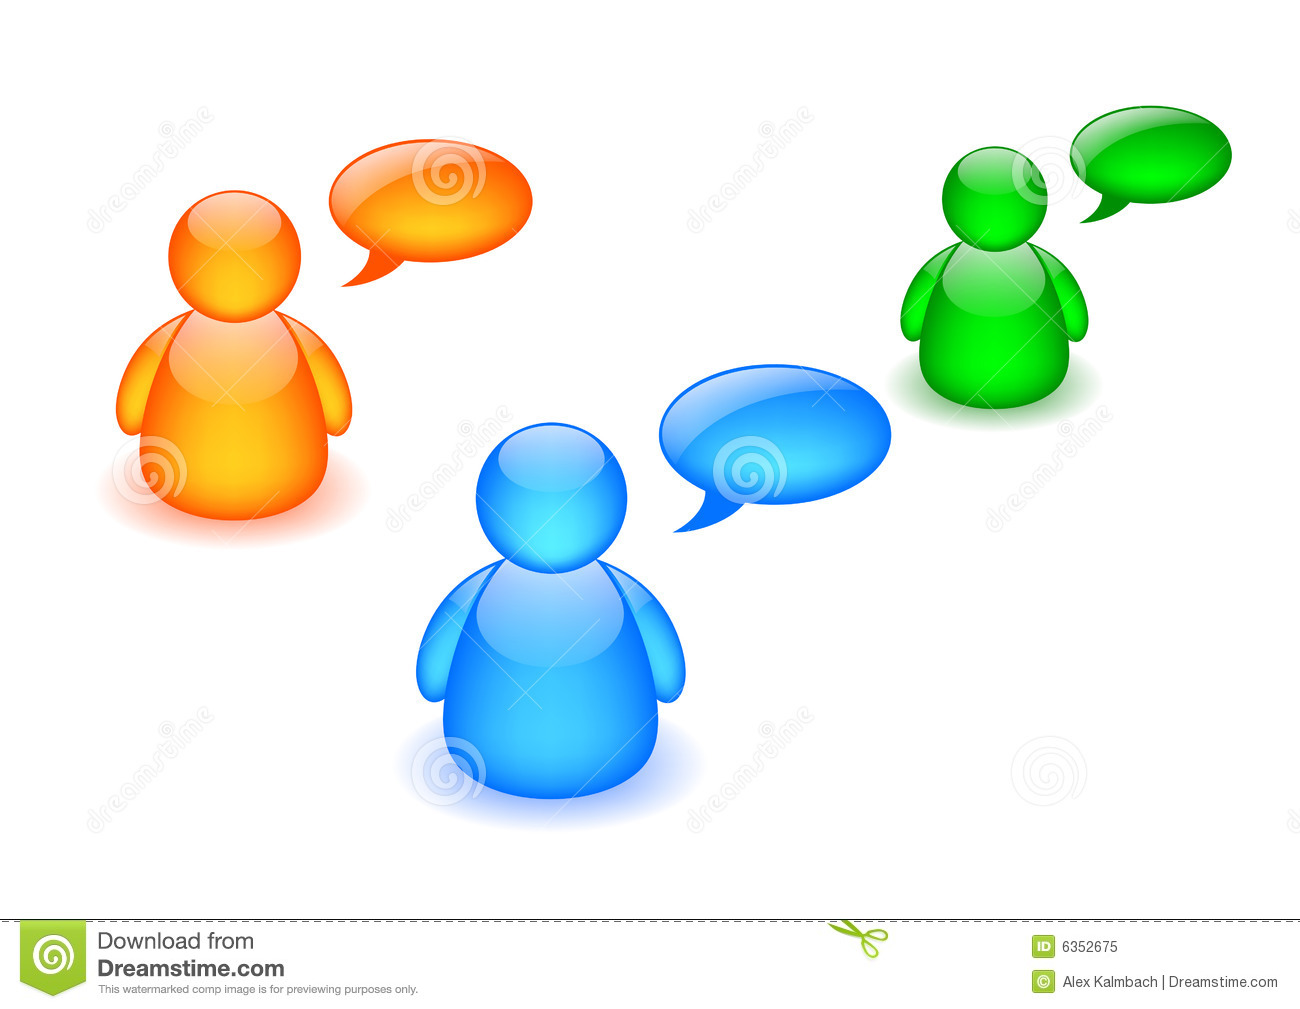 discussion board (discussion group, message board, online forum)